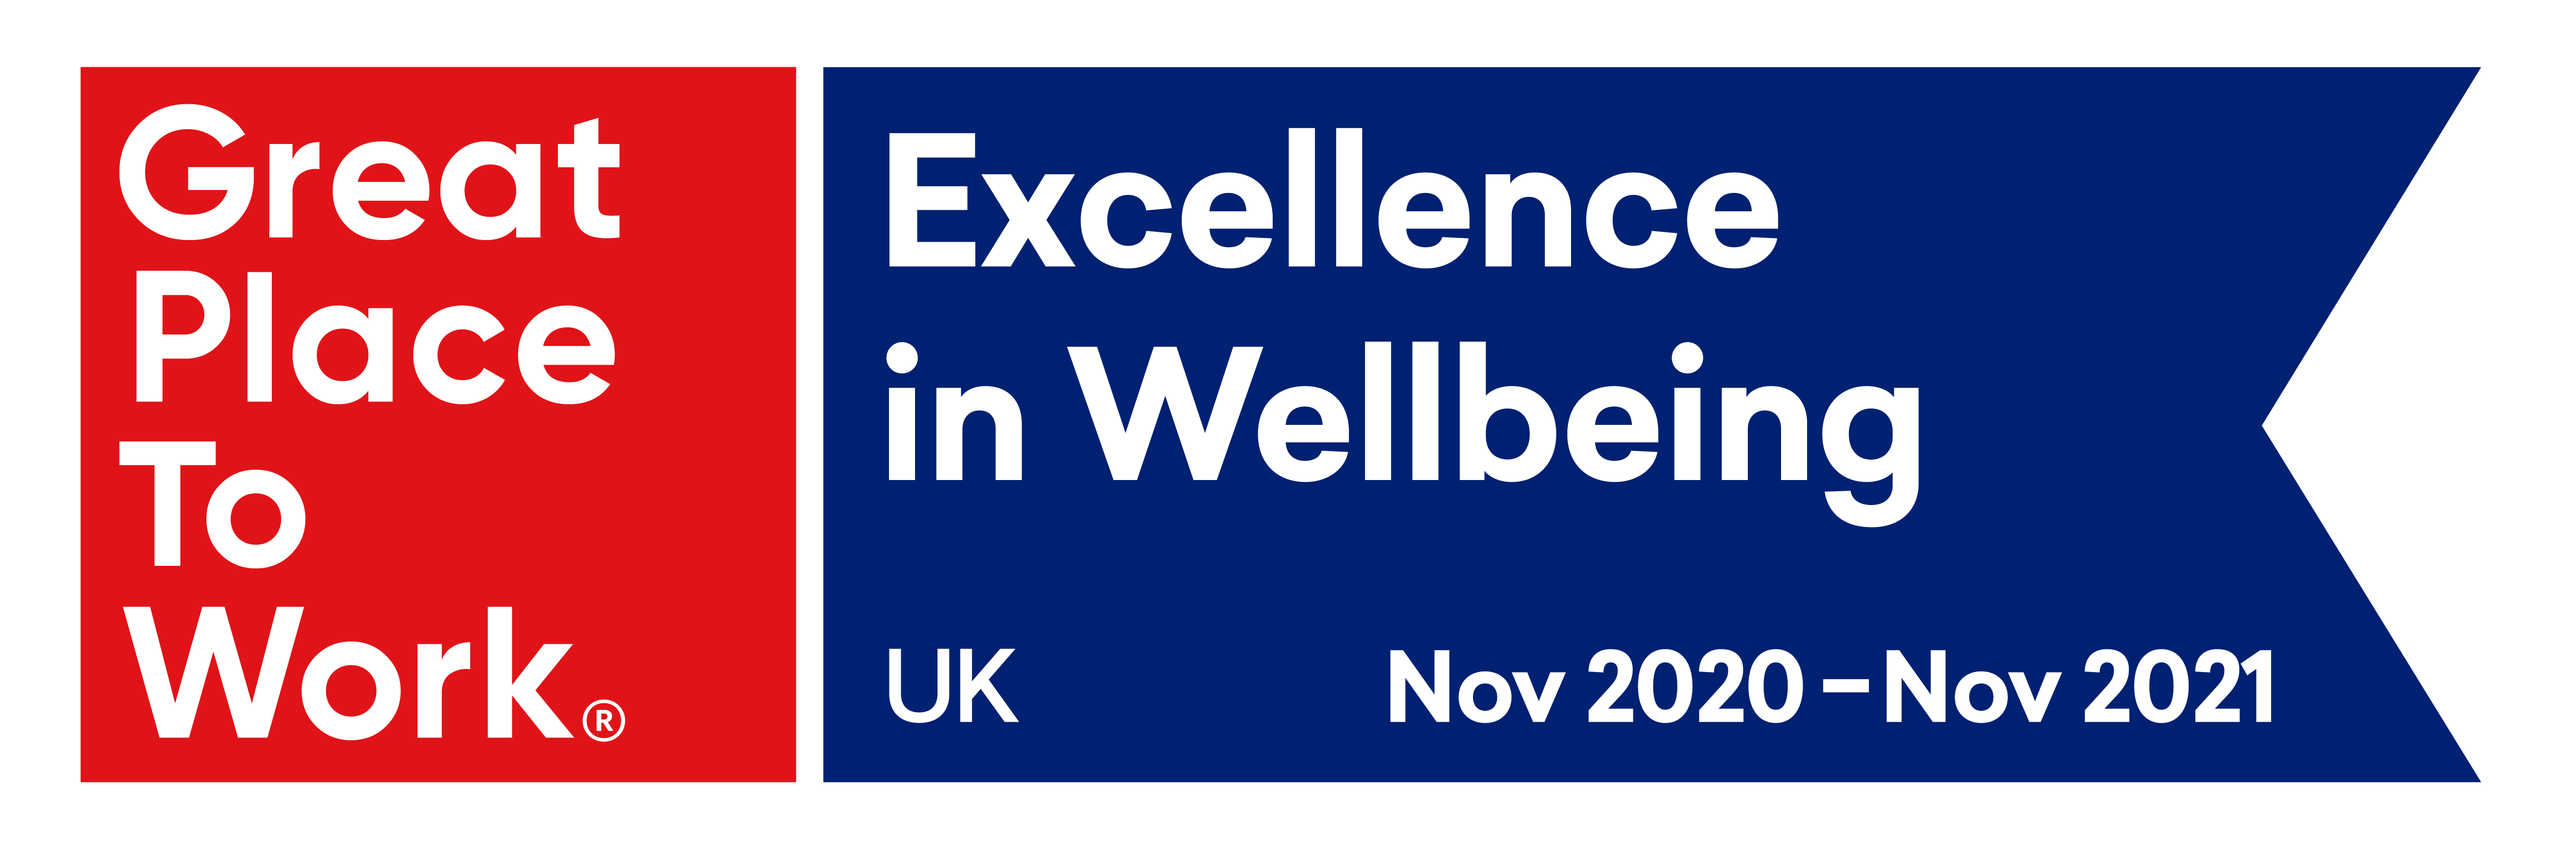 GPTW-Excellence-in-Wellbeing-UK.png